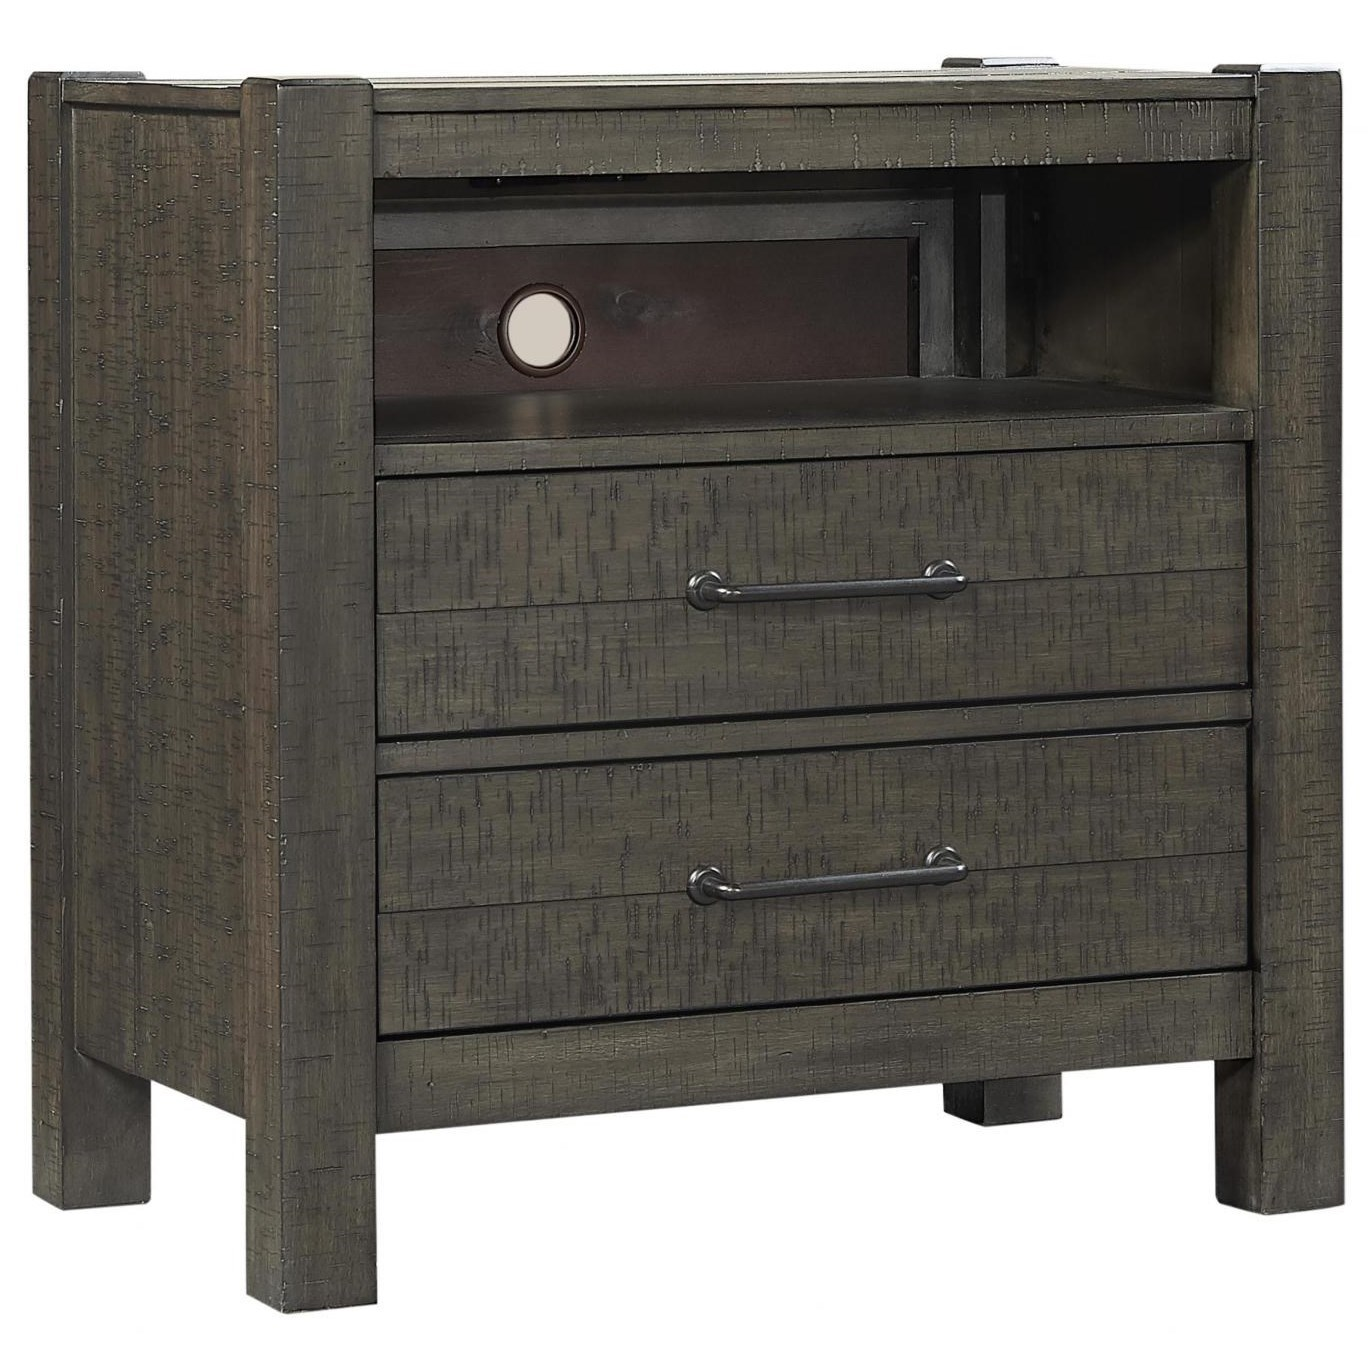 Mill Creek 2 Drawer Nightstand by Aspenhome at Walker's Furniture